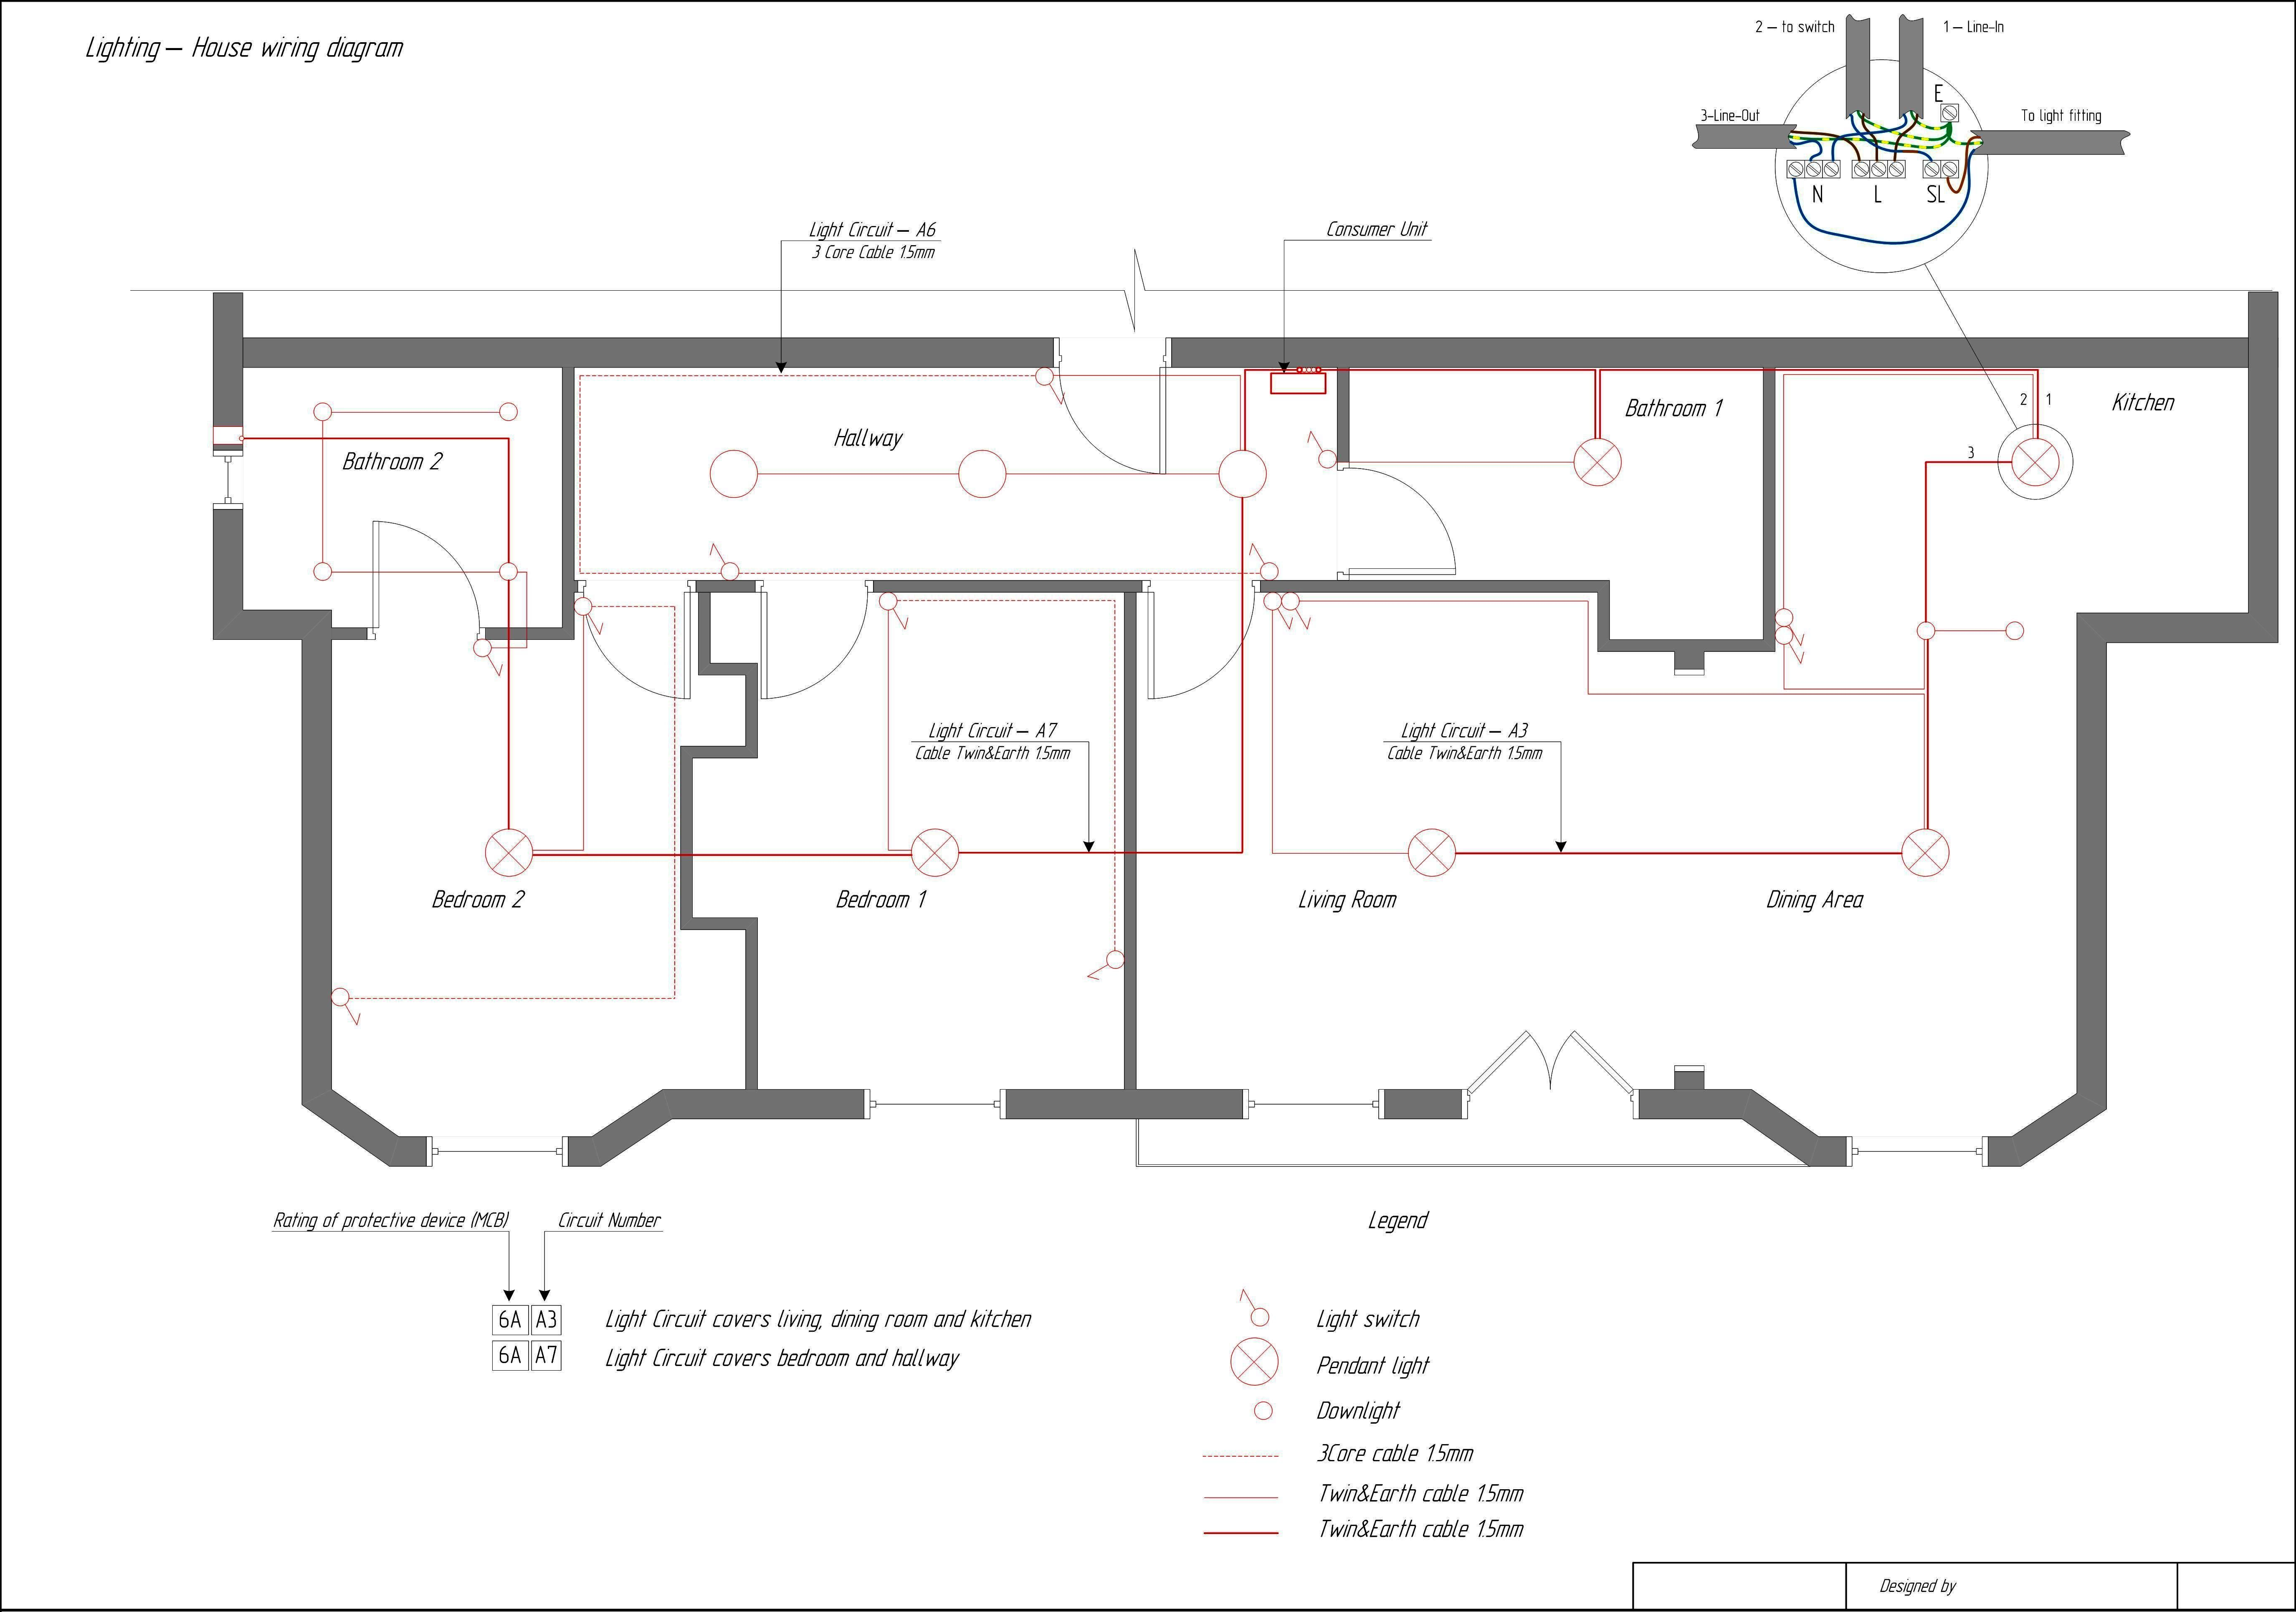 House Wiring Diagram. House. Wiring Diagrams Database | HOUSE ...